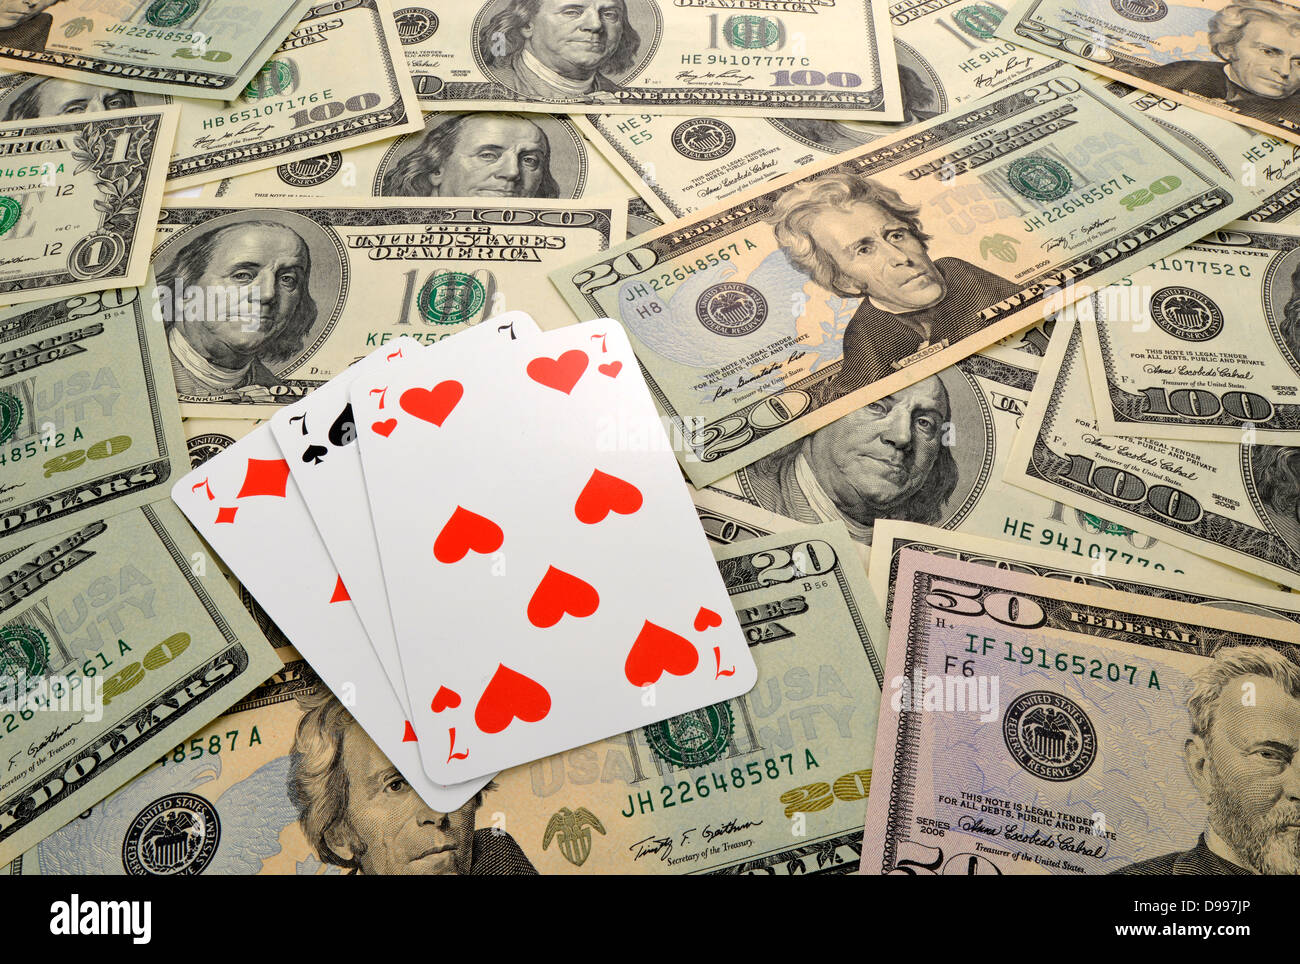 Holdem ace high or low